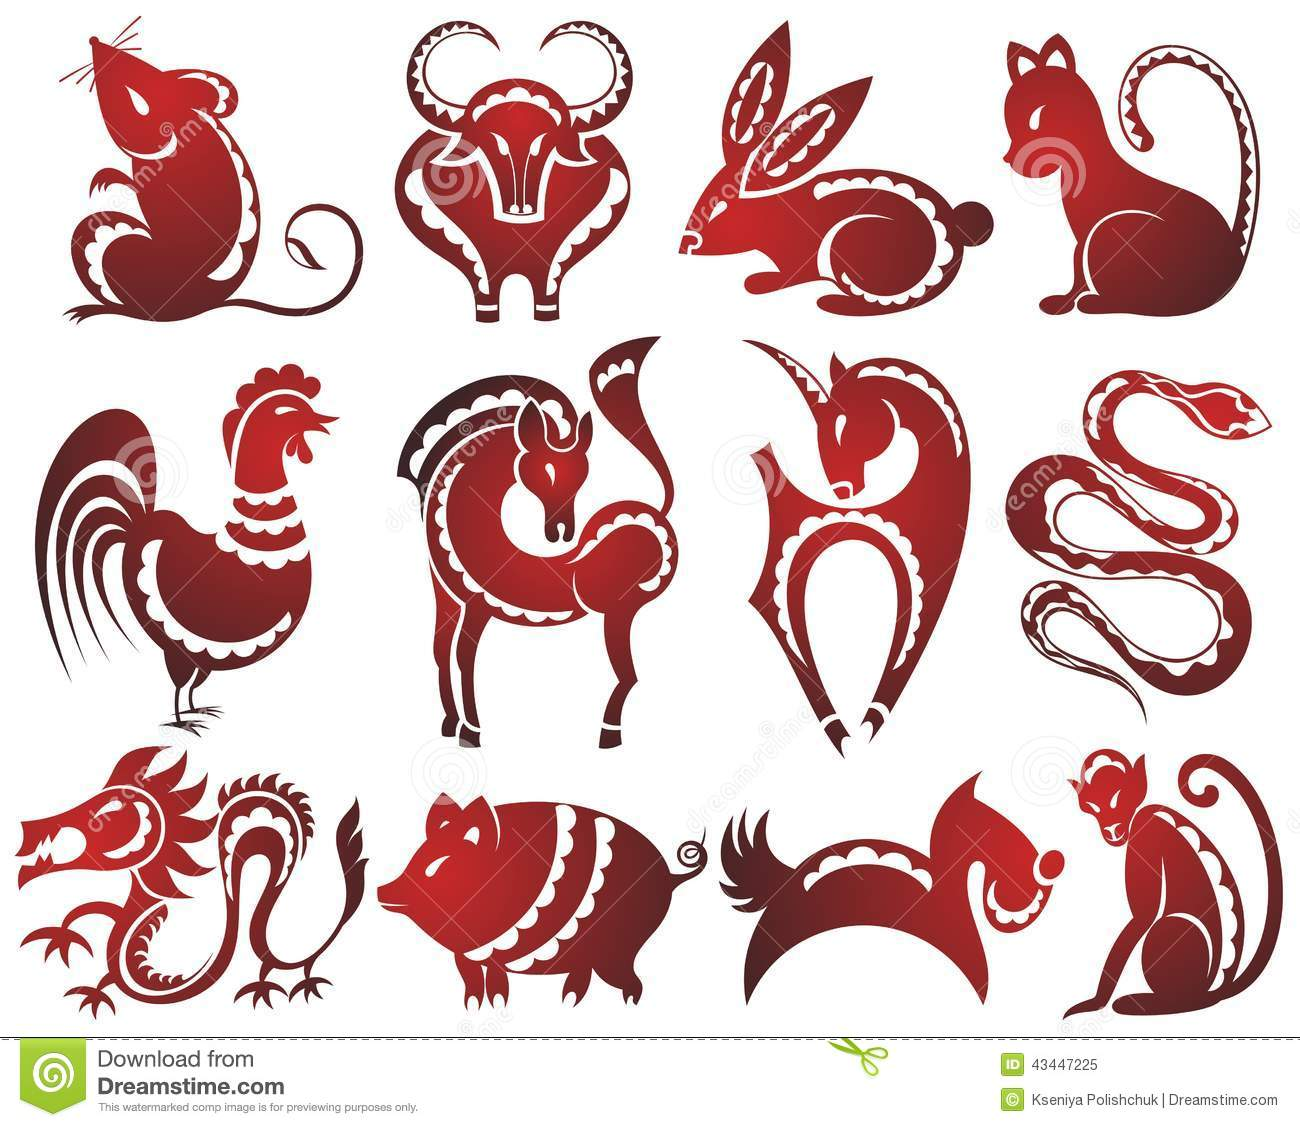 12 Chinese Zodiac Signs Stock Vector - Image: 43447225